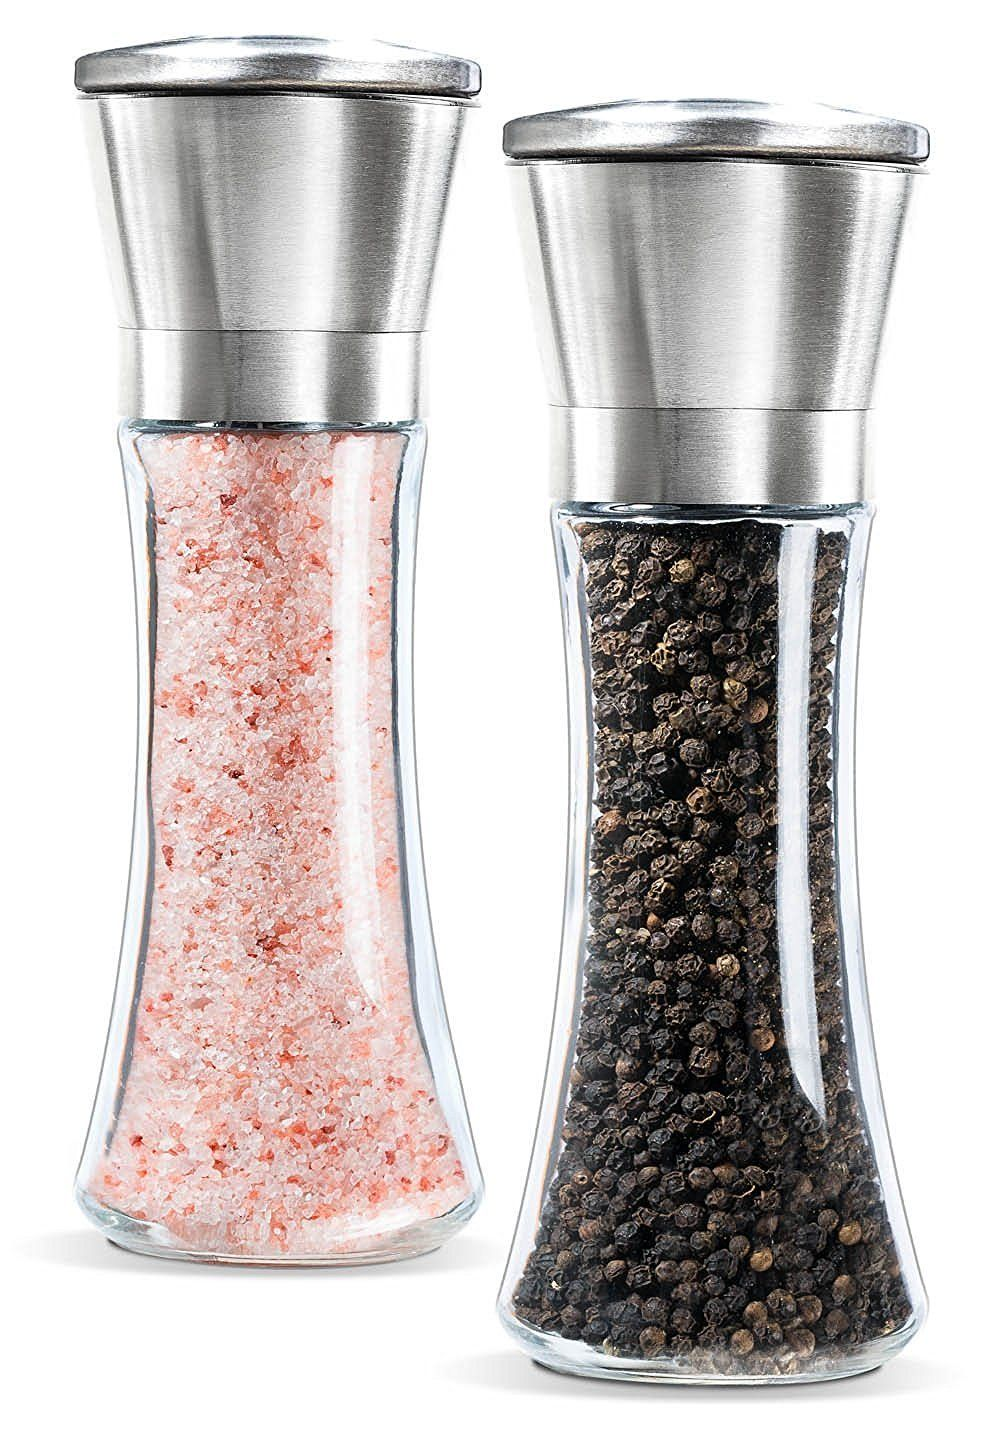 Modern Salt Pepper Shakers Premium Stainless Steel Salt And Pepper Grinder Set Modern Salt